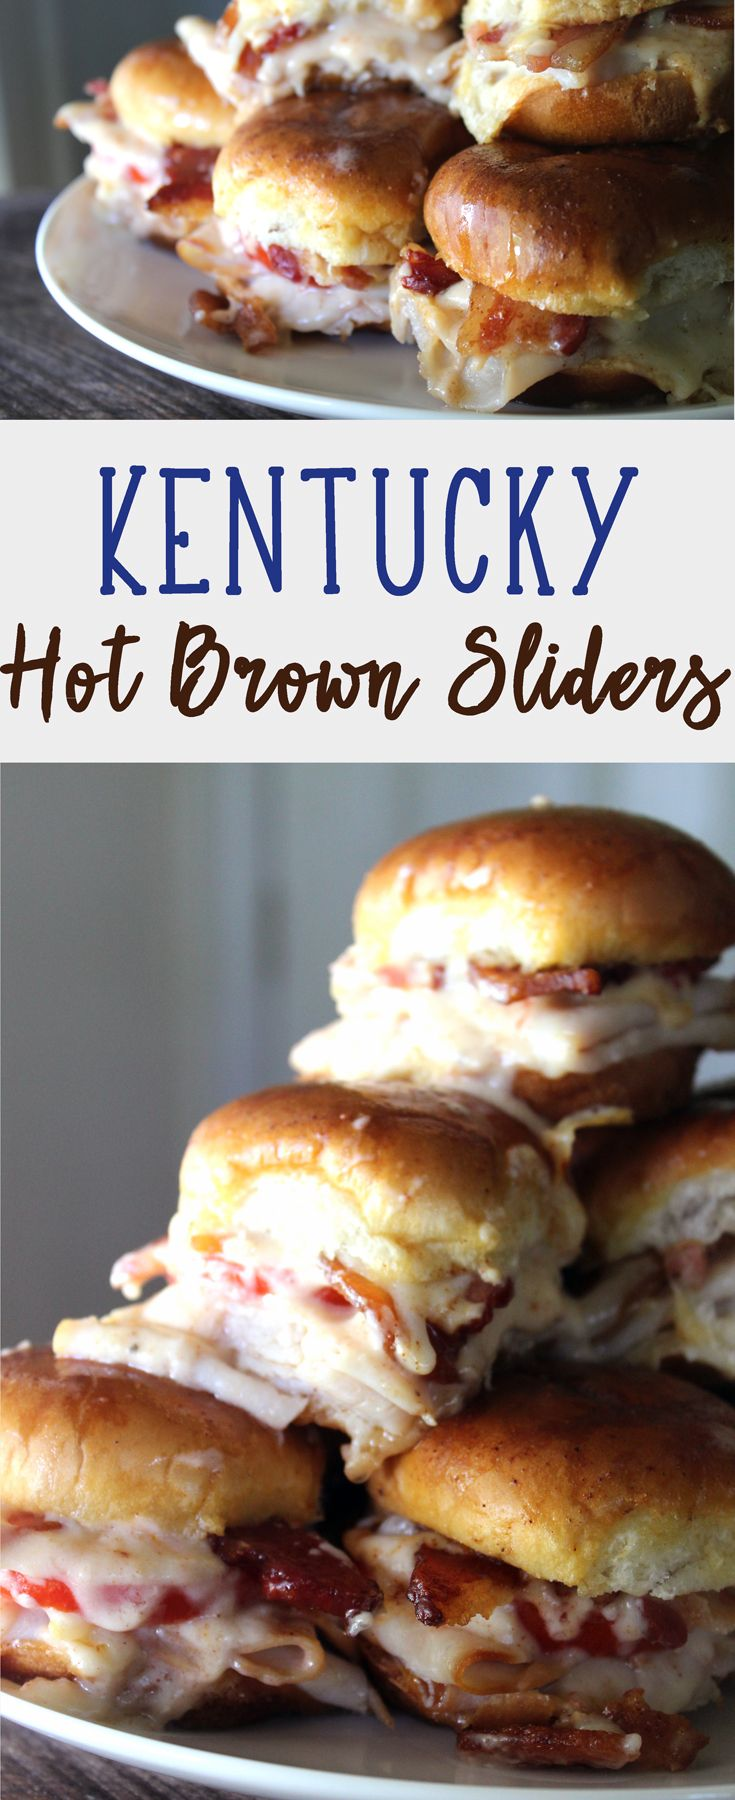 These Kentucky Hot Brown Sliders are so good. Yummy turkey, buttered buns, fresh ripe tomato, cheese gravy (yes, I said CHEESE GRAVY), and bacon. #kentuckyhotbrown via @Buy This Cook That